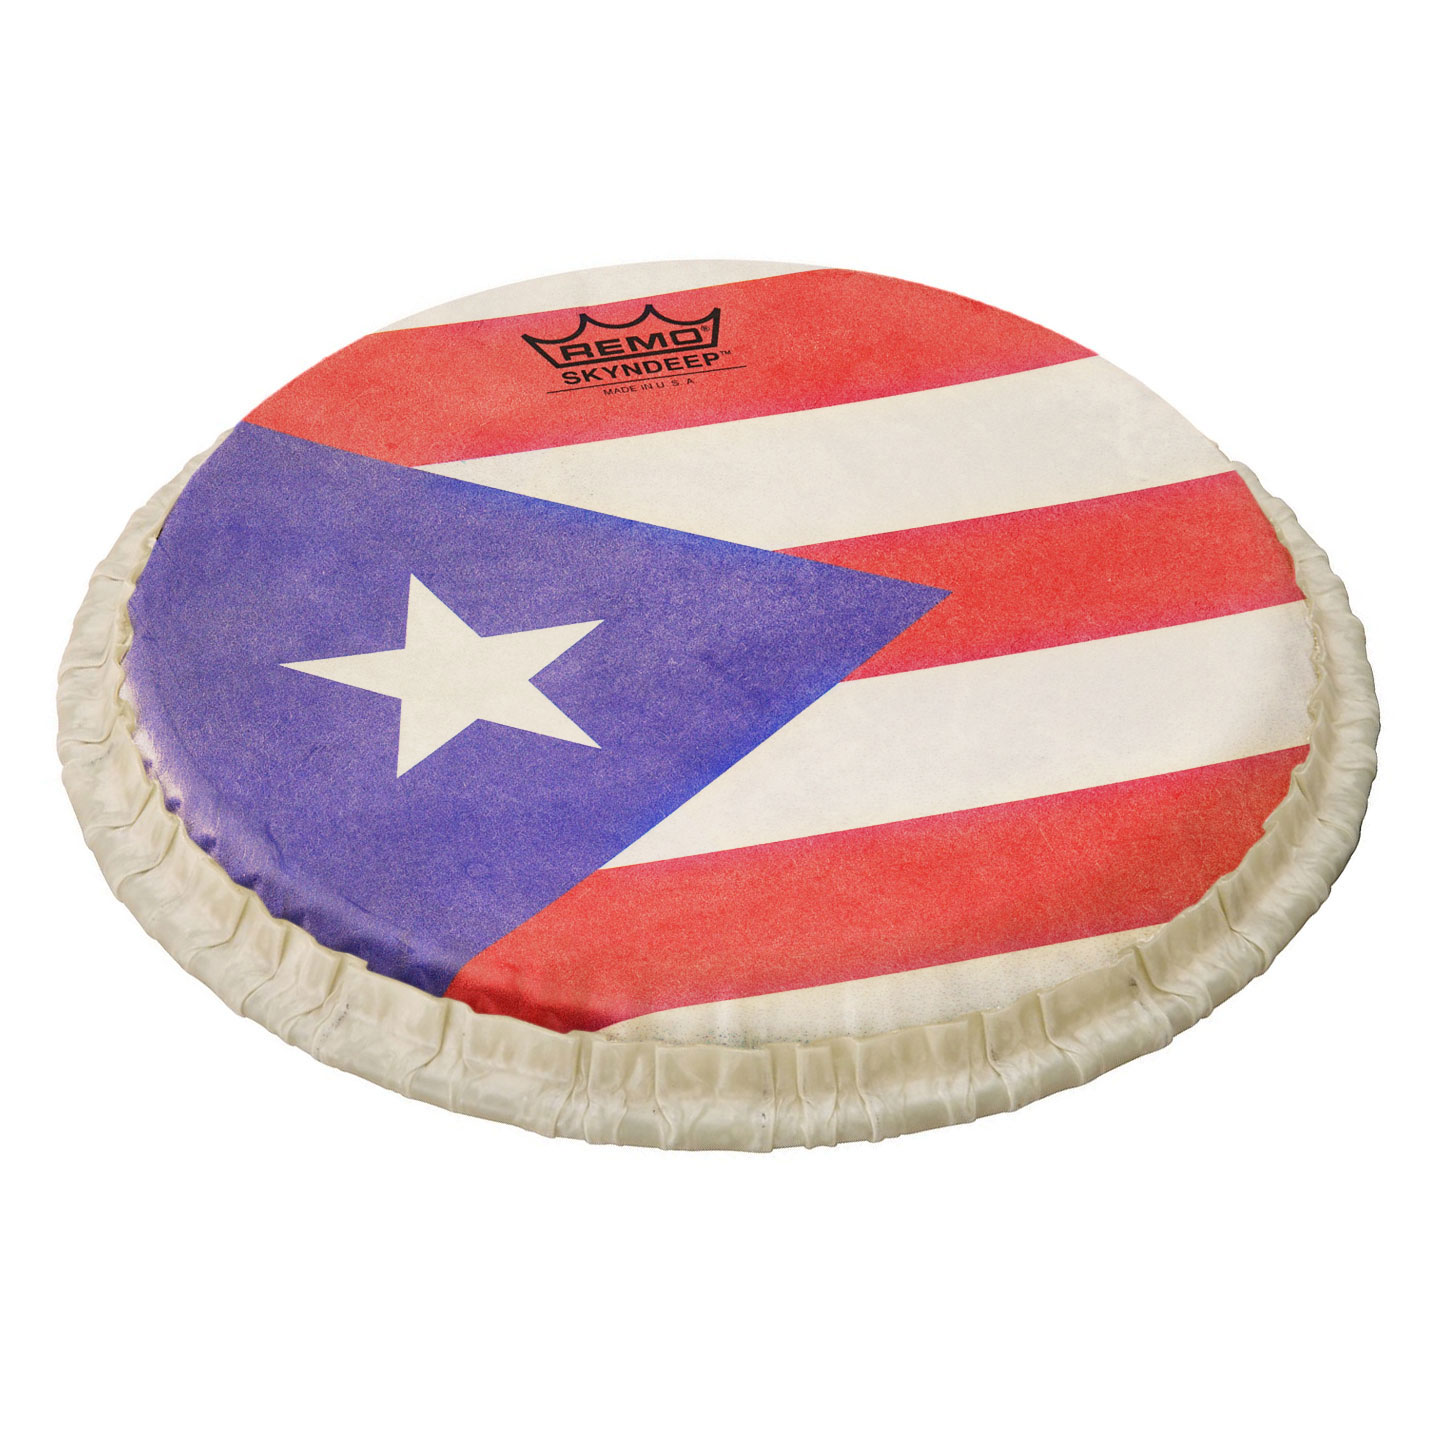 "Remo 7.15"" Skyndeep R-Series Bongo Head with Puerto Rican Flag Graphic"